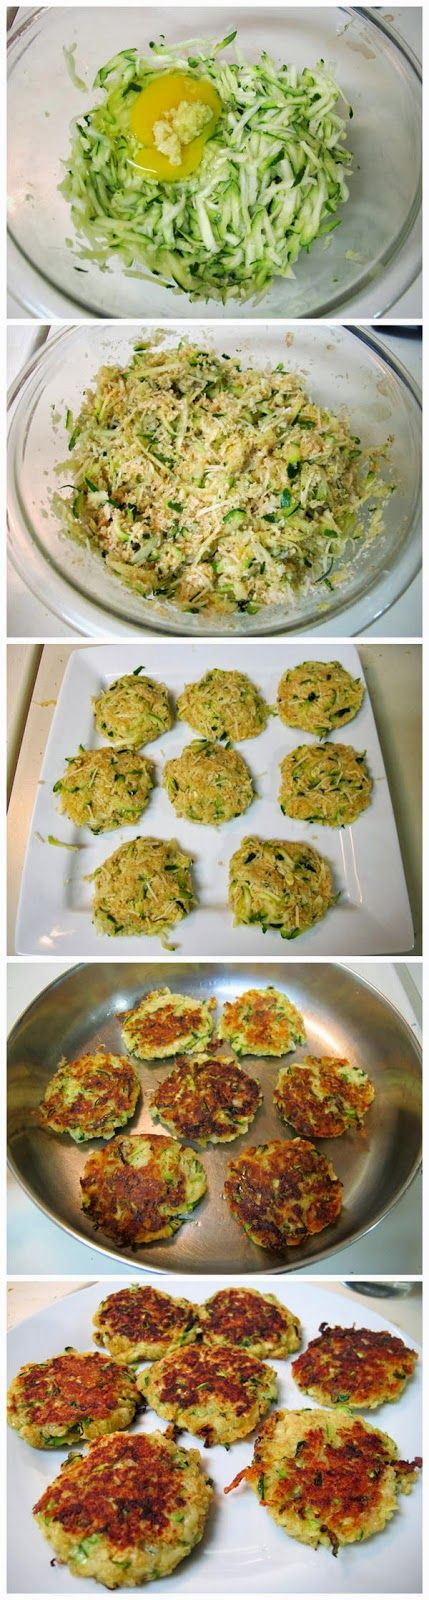 Zucchini Cakes I keep seeing these repinned, so i guess I should give them a try?